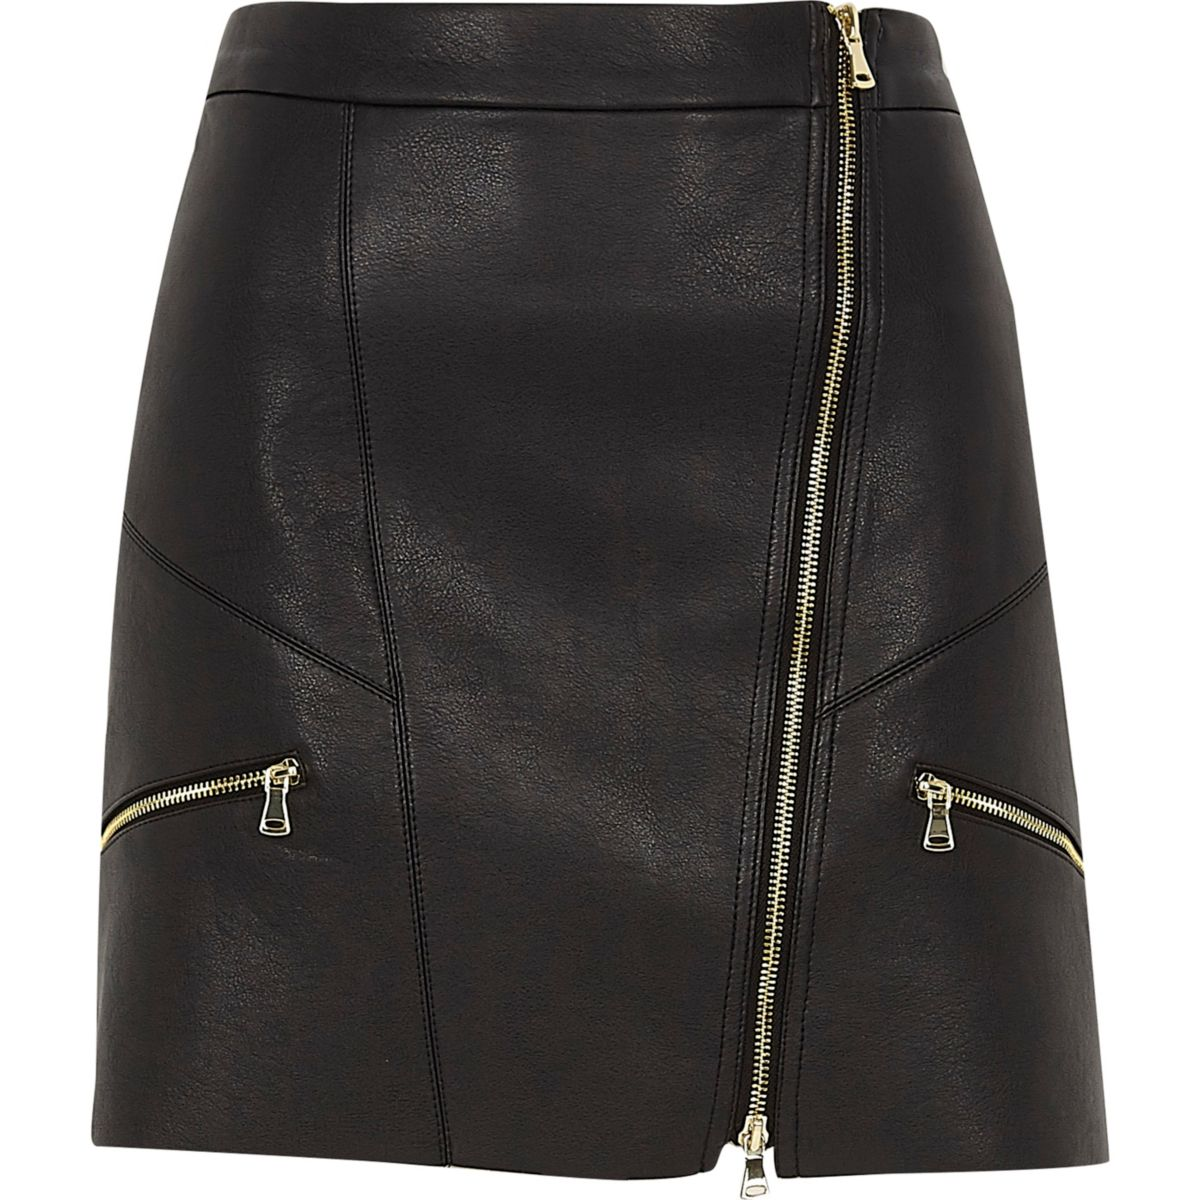 Black faux leather zip front mini skirt